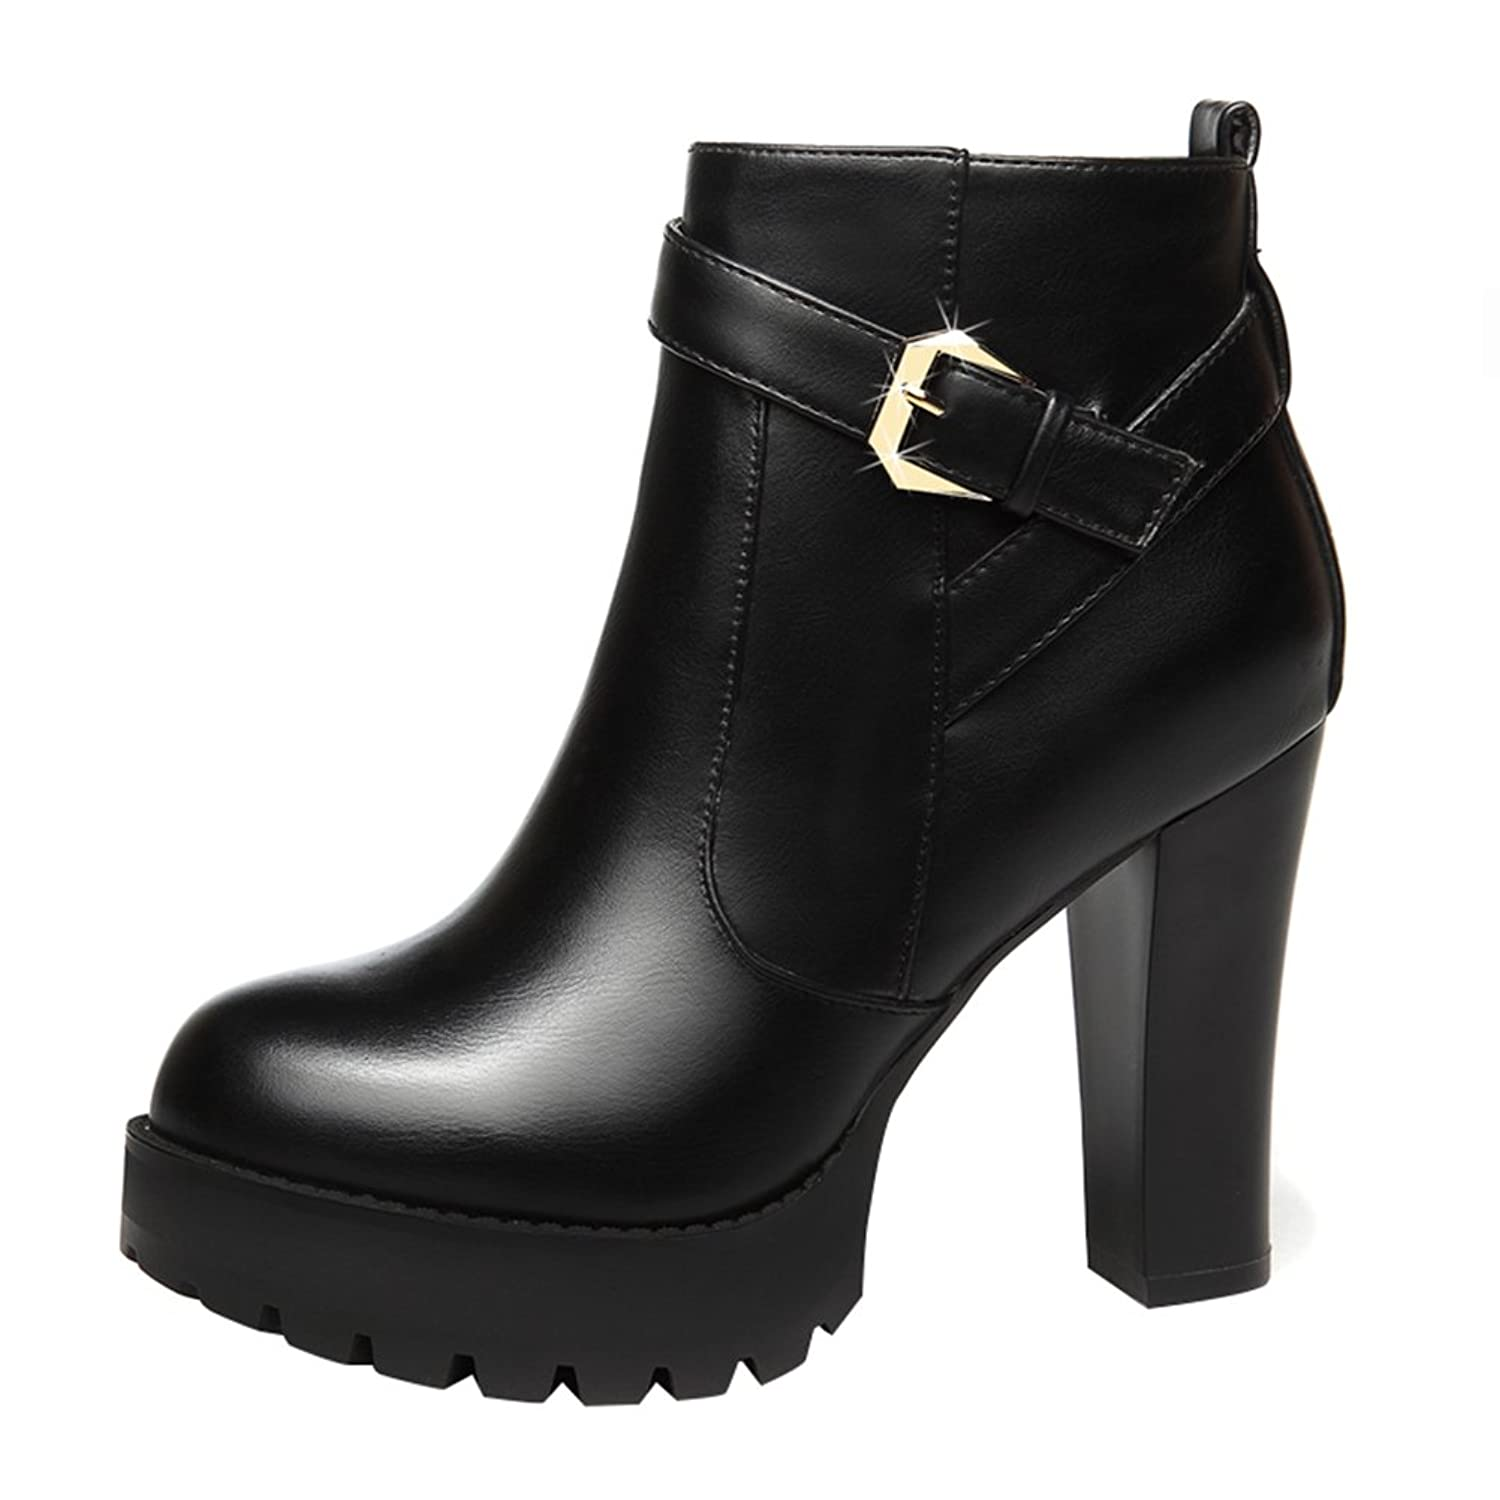 T&Mates Womens Warm Comfy Faux Fur Round Toe Zip Buckle Strap Platform Chunky High Heel Ankle Booties